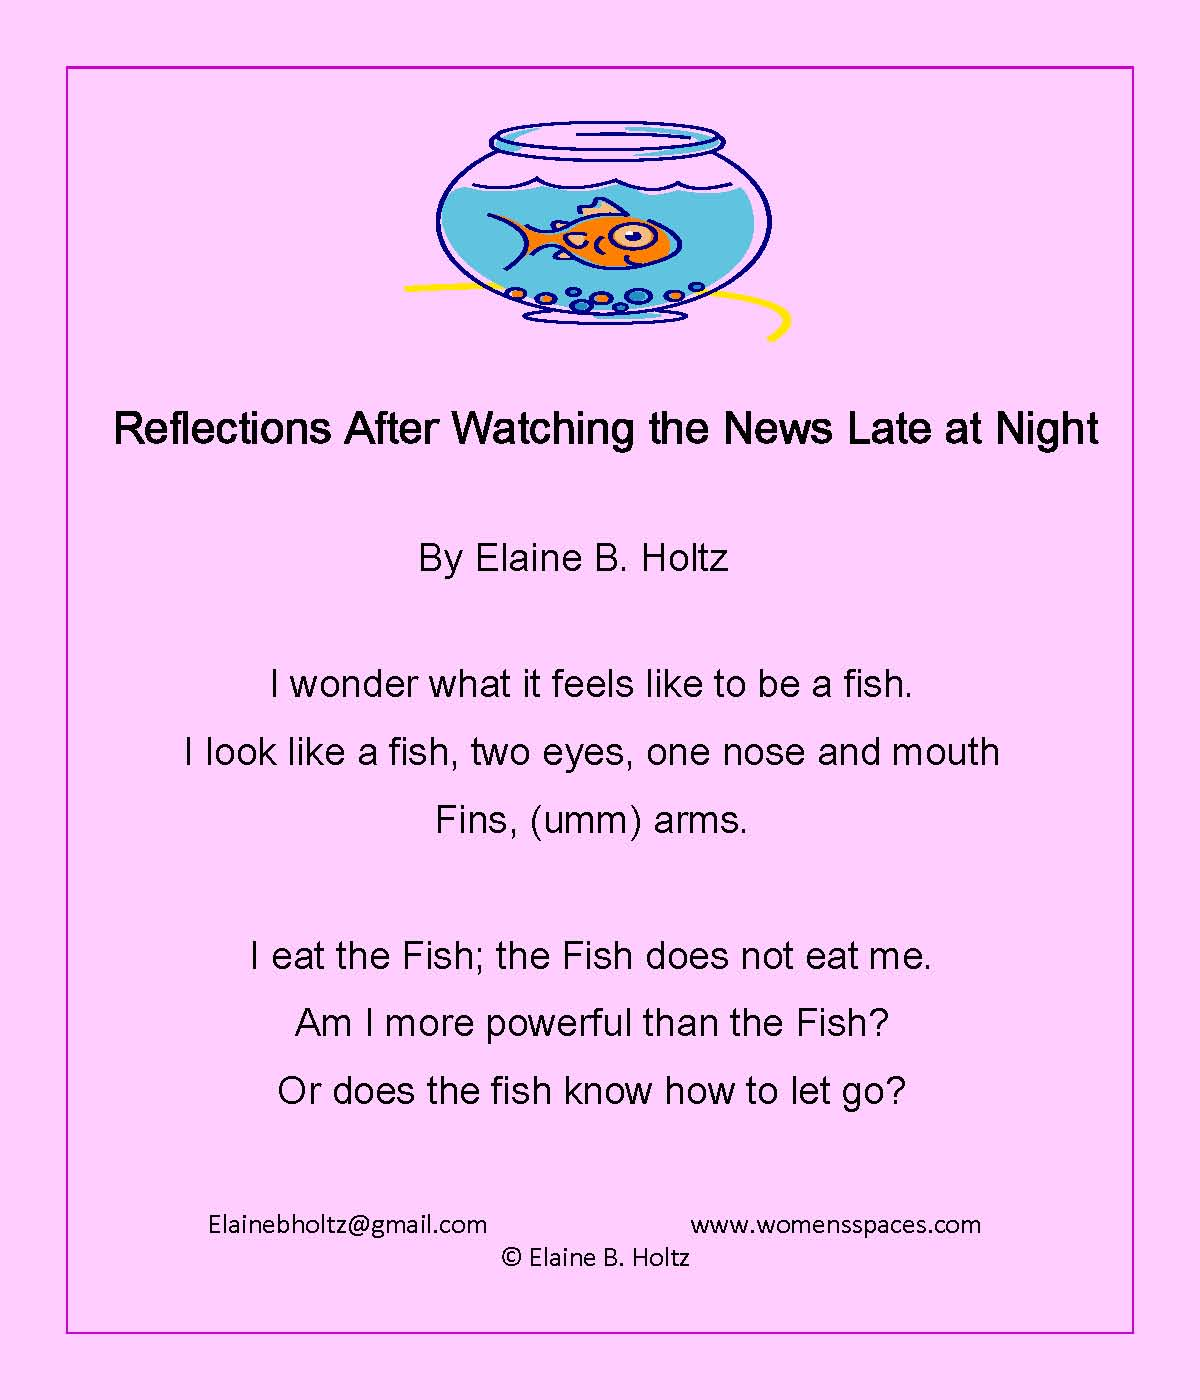 Reflections After Watching the News Late at Night  by Elaine B. Holtz